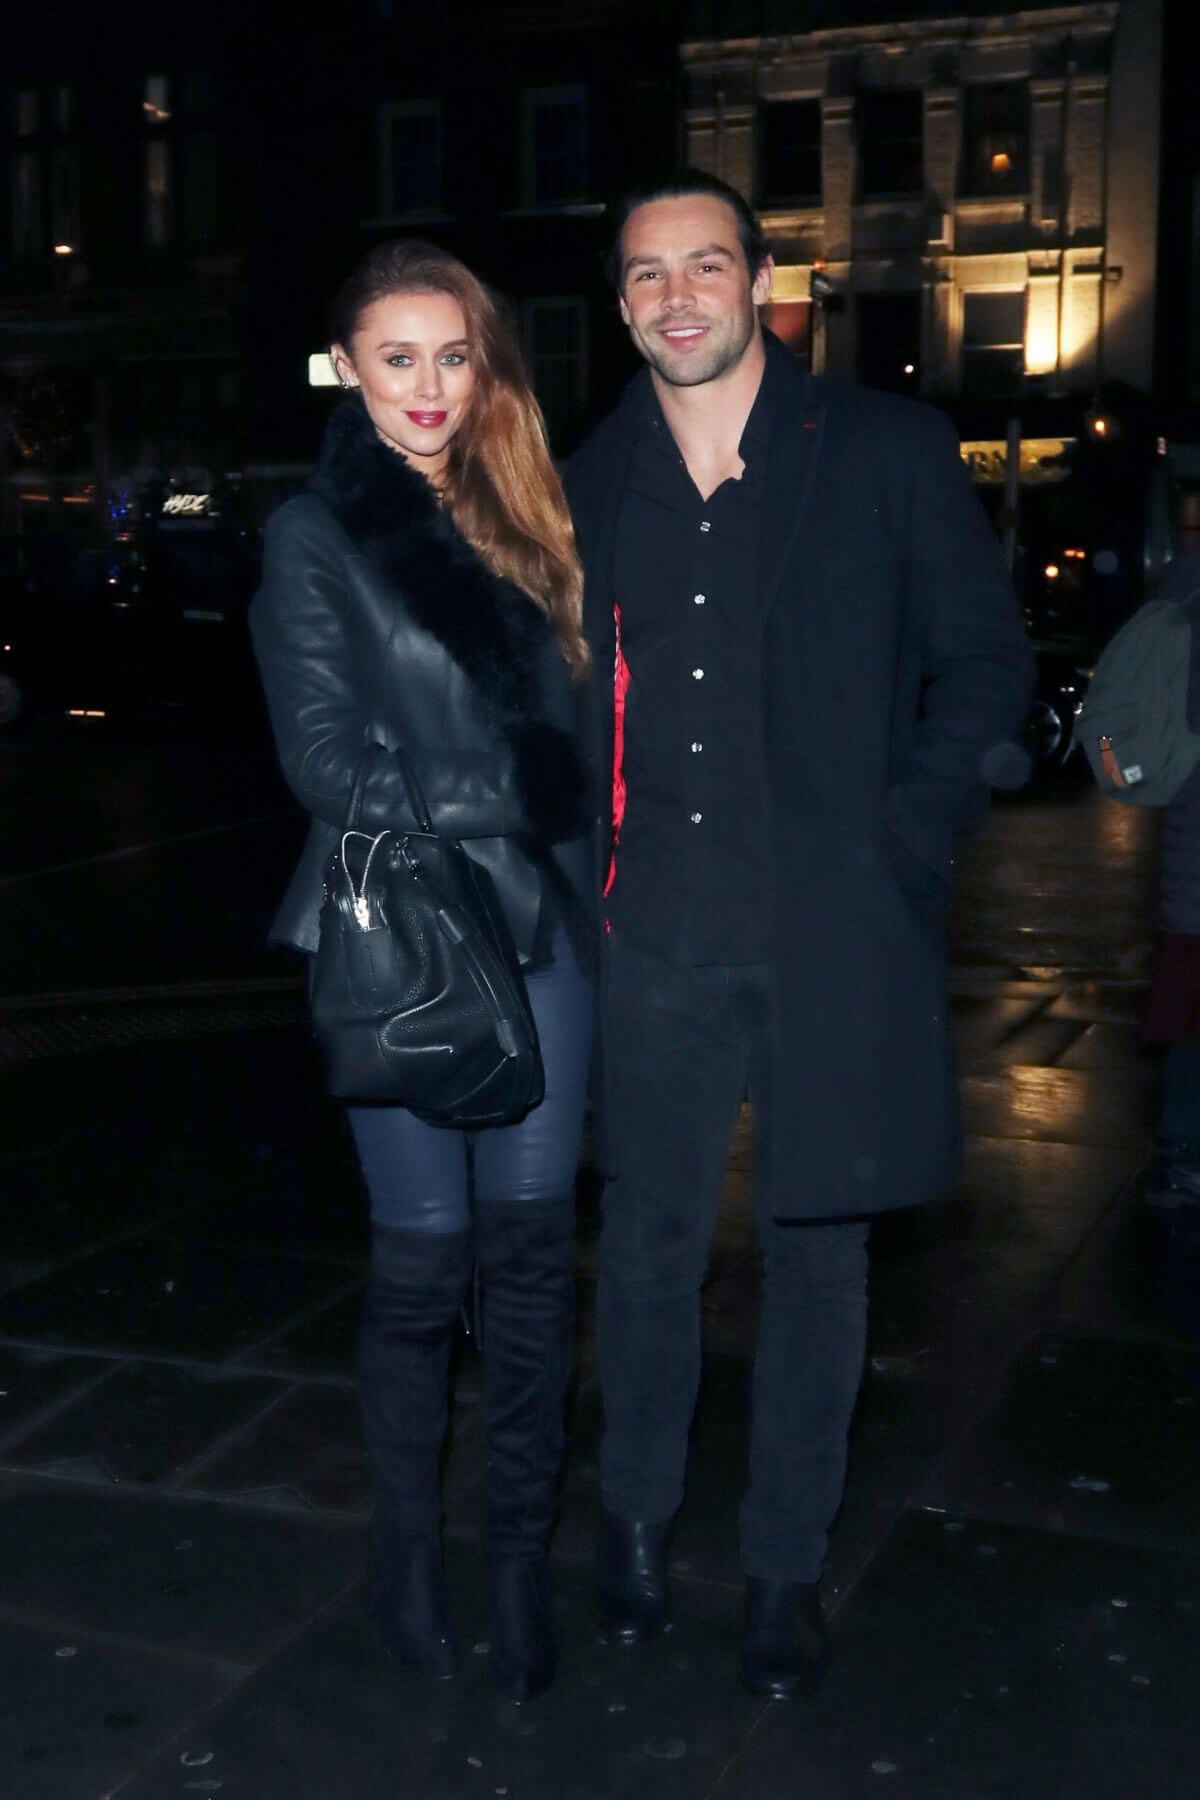 Una Healy and Ben Foden Stills at Mahiki in London